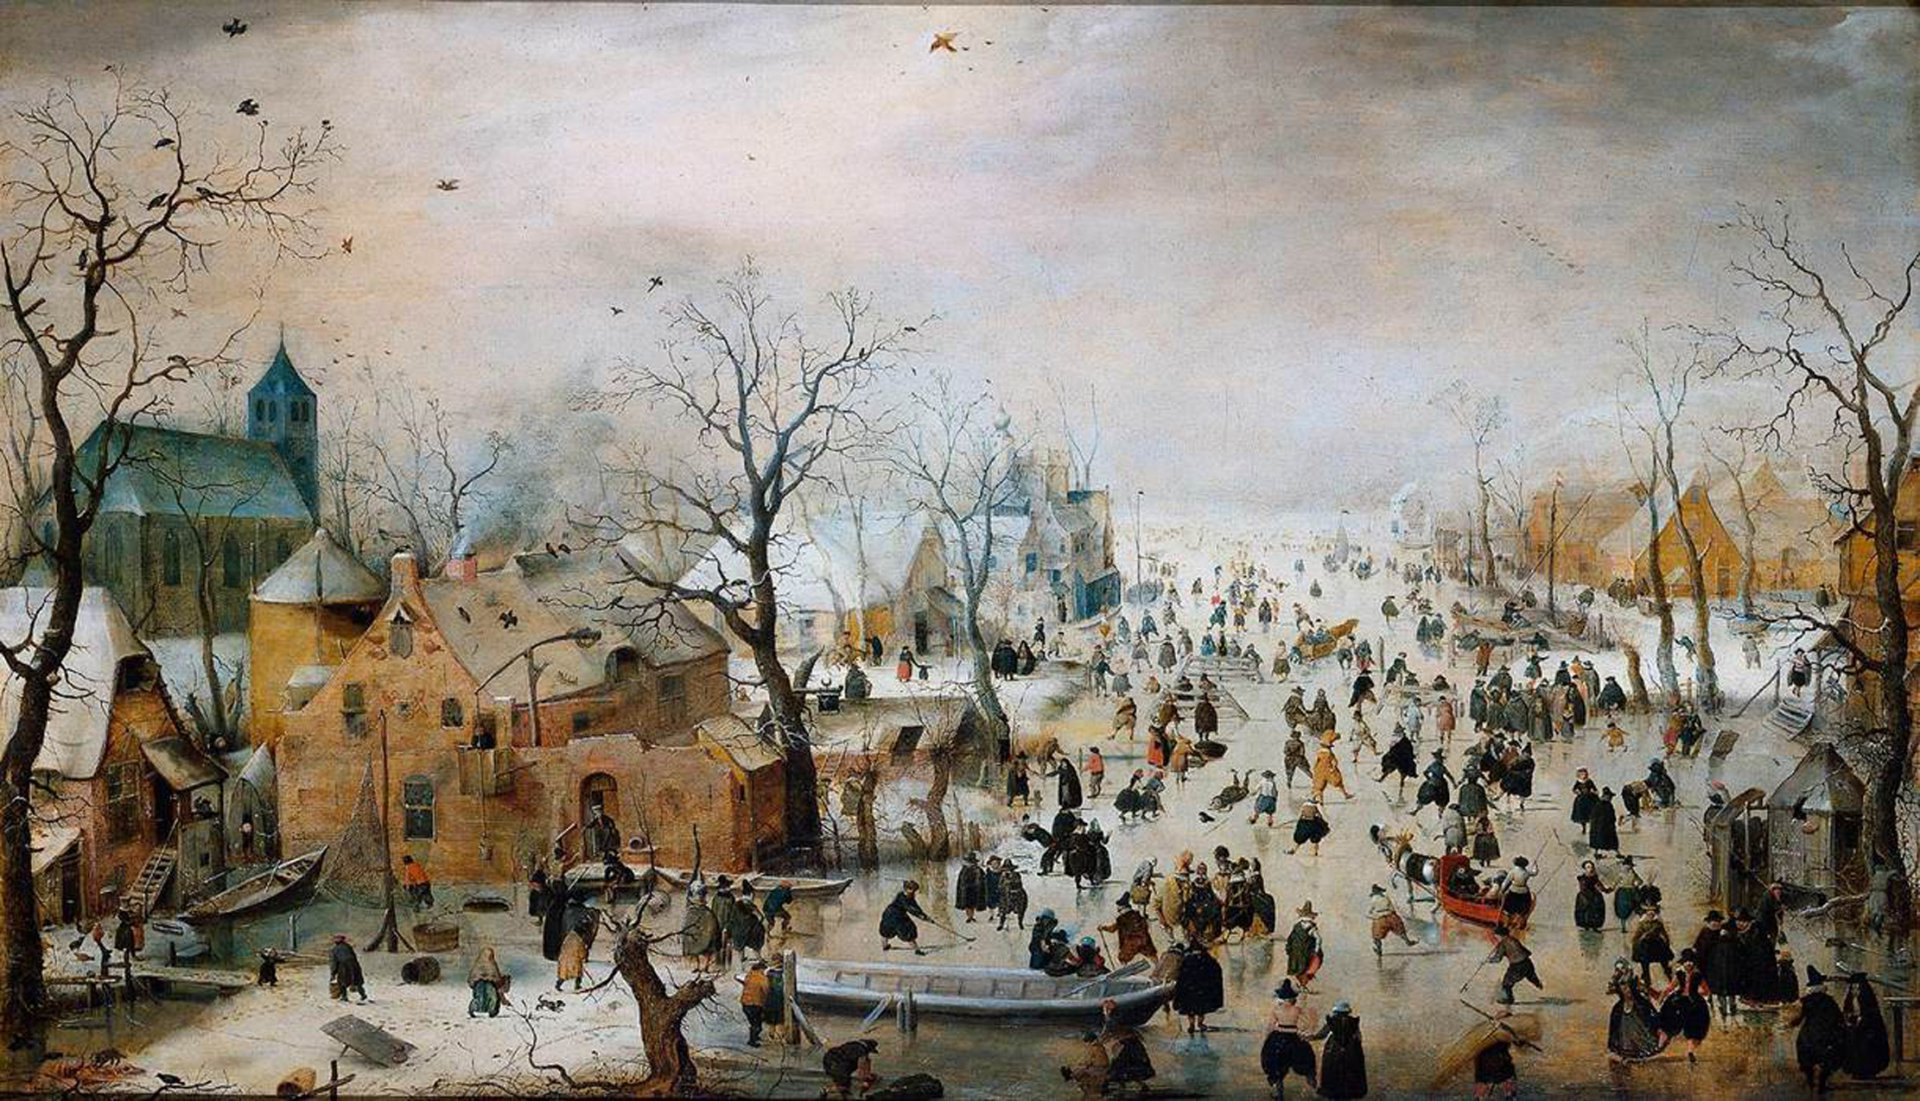 avercamp-winter-landscape-with-skaters-c1608.jpg